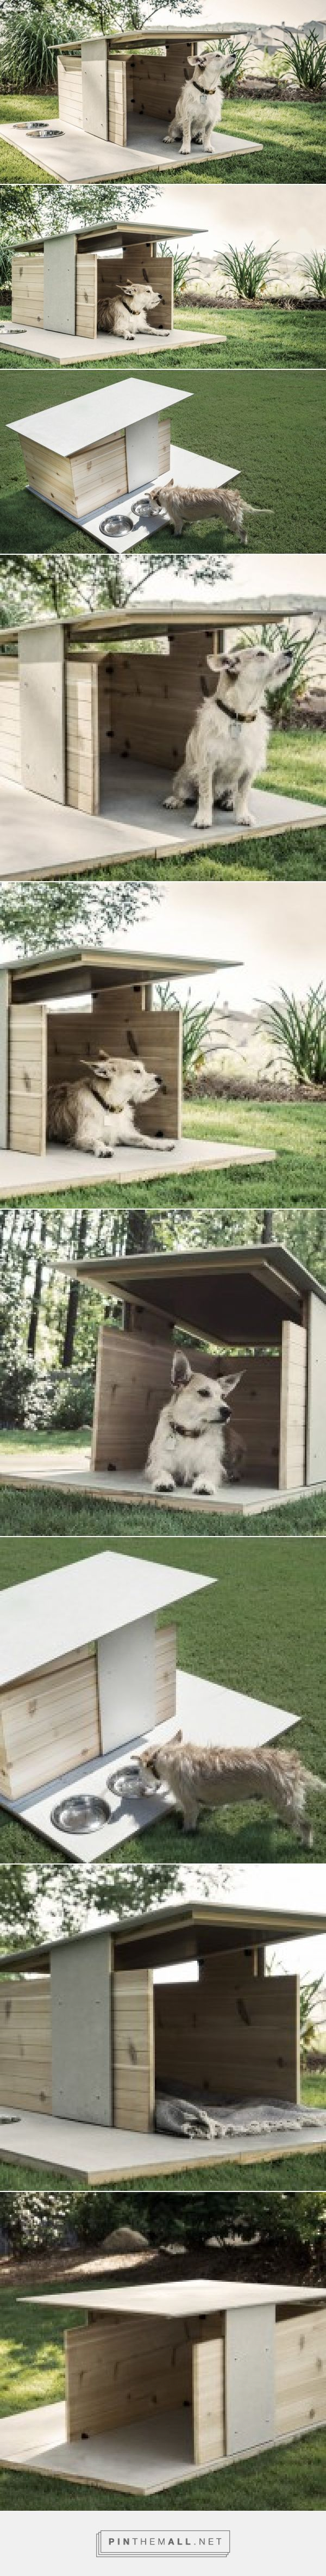 Two Atlanta-Based Designers Create An Architecturally Inspired Dog House | CONTEMPORIST - created via http://pinthemall.net